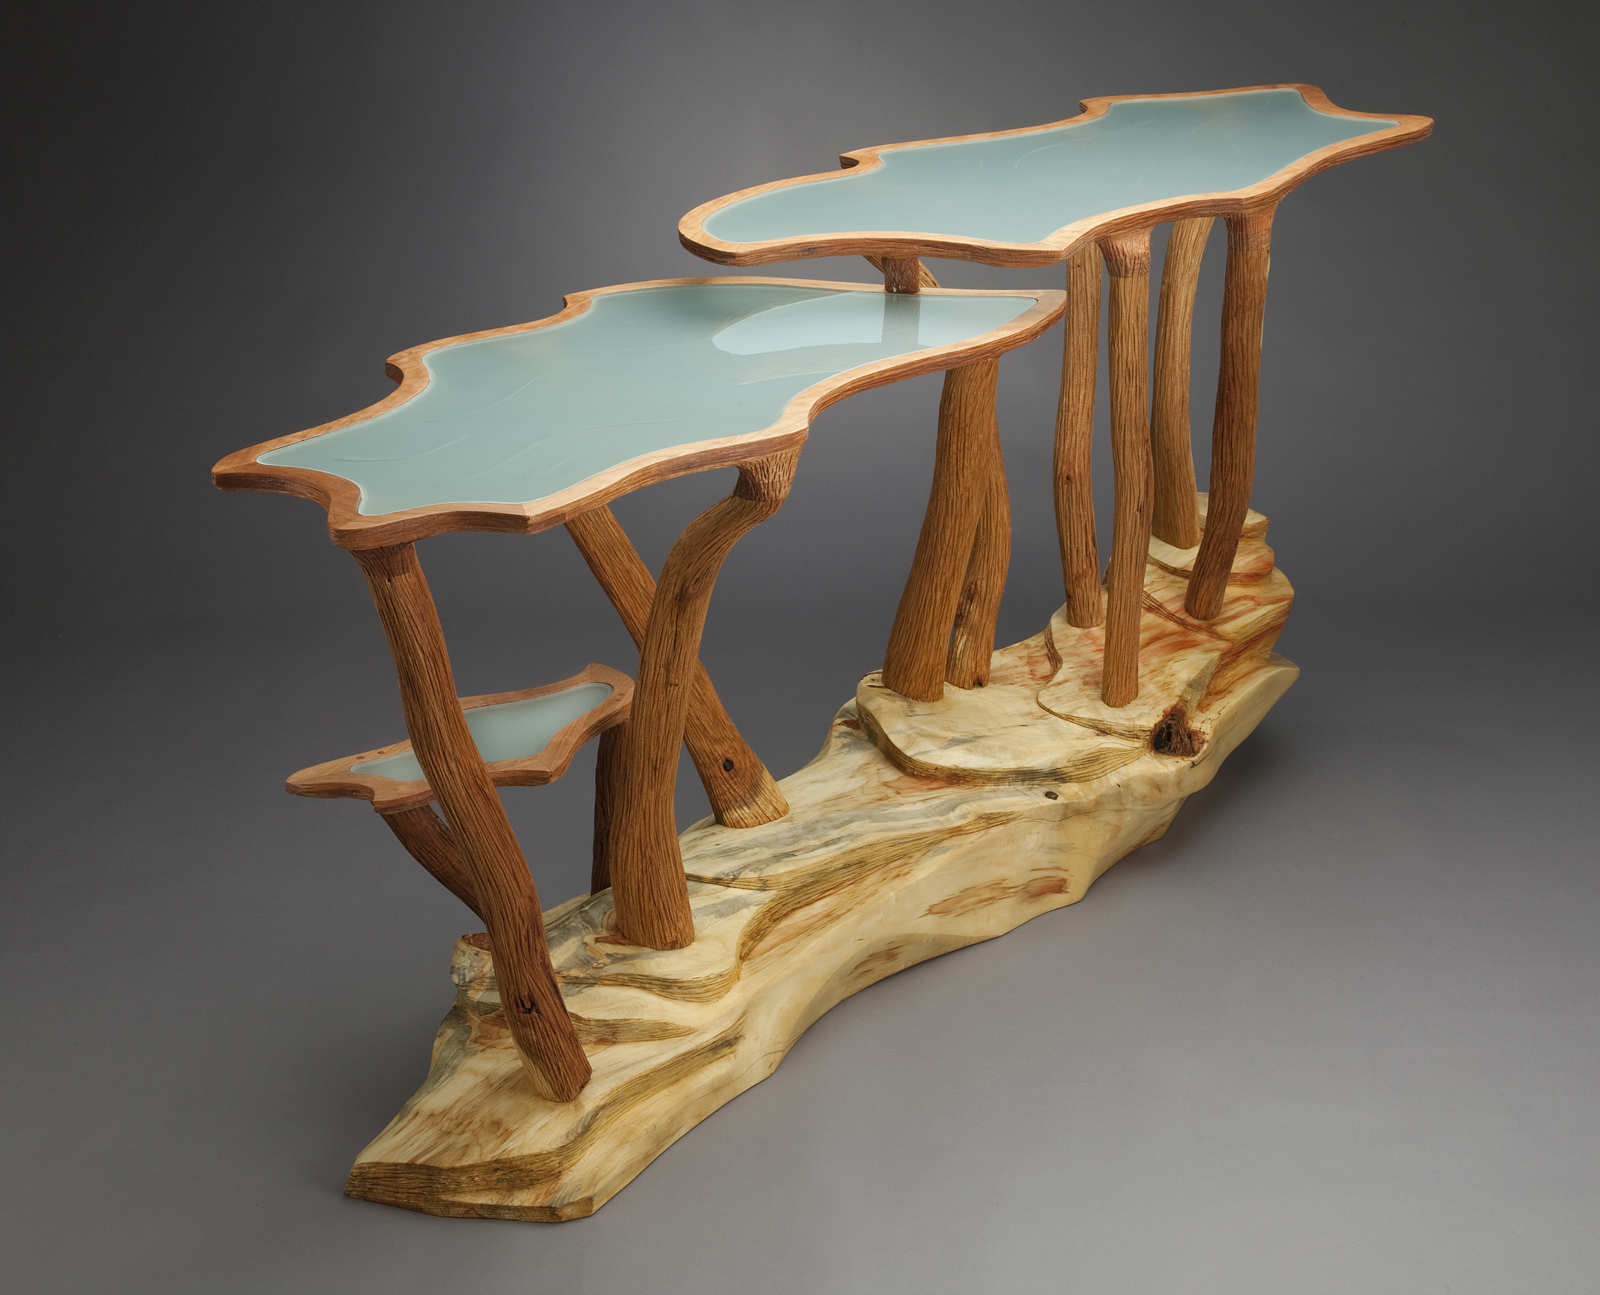 Squash Blossom Table 1 by Aaron Laux